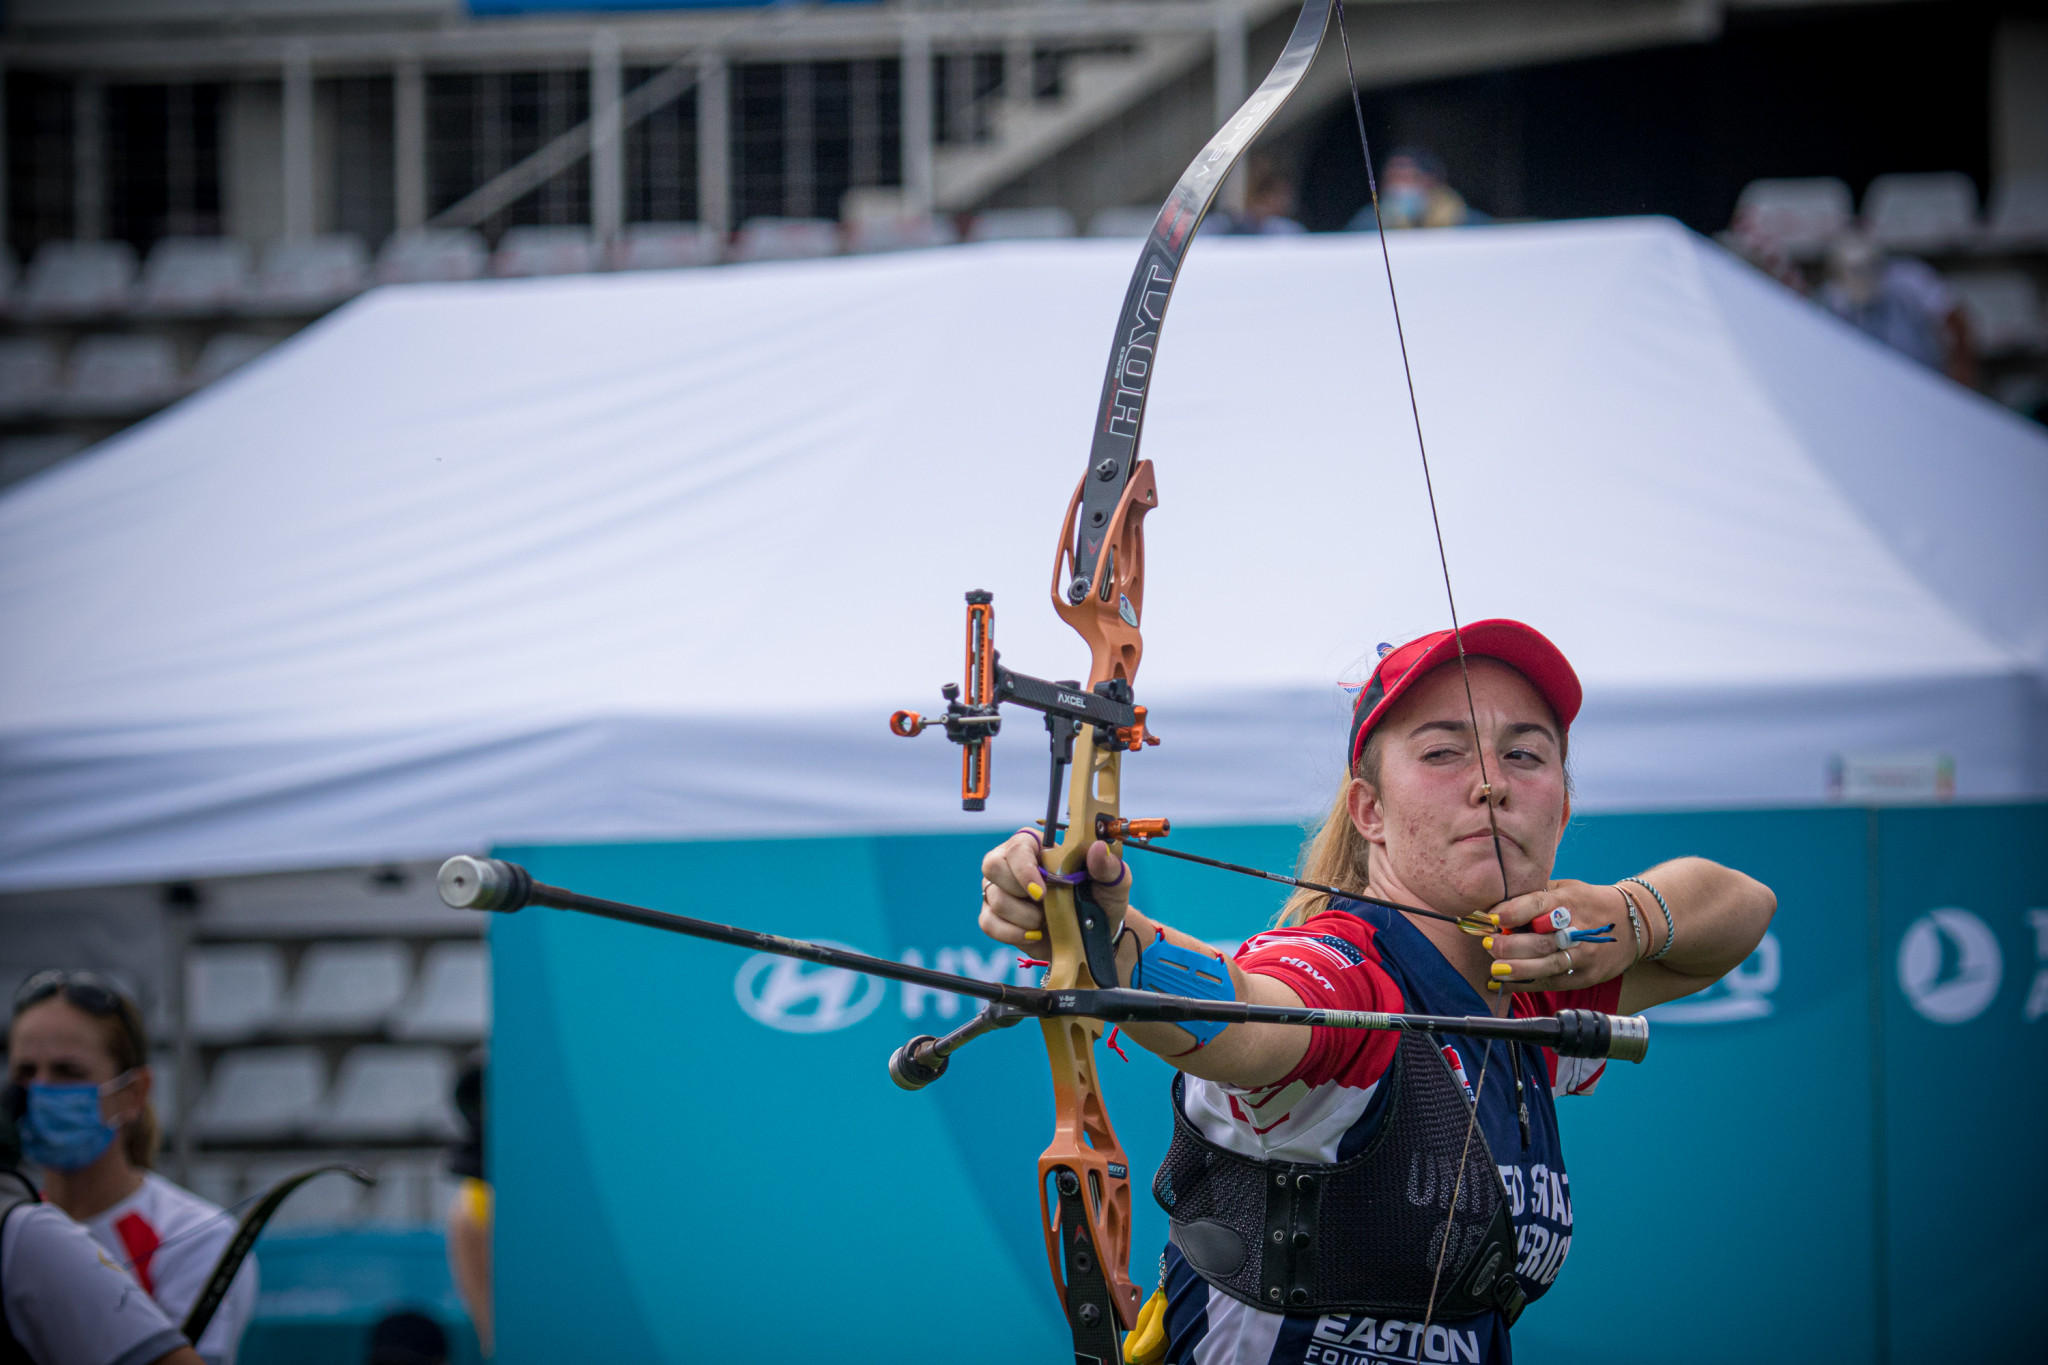 Mexico, US and Italy seal remaining women's team quota places at final Tokyo 2020 archery qualifier